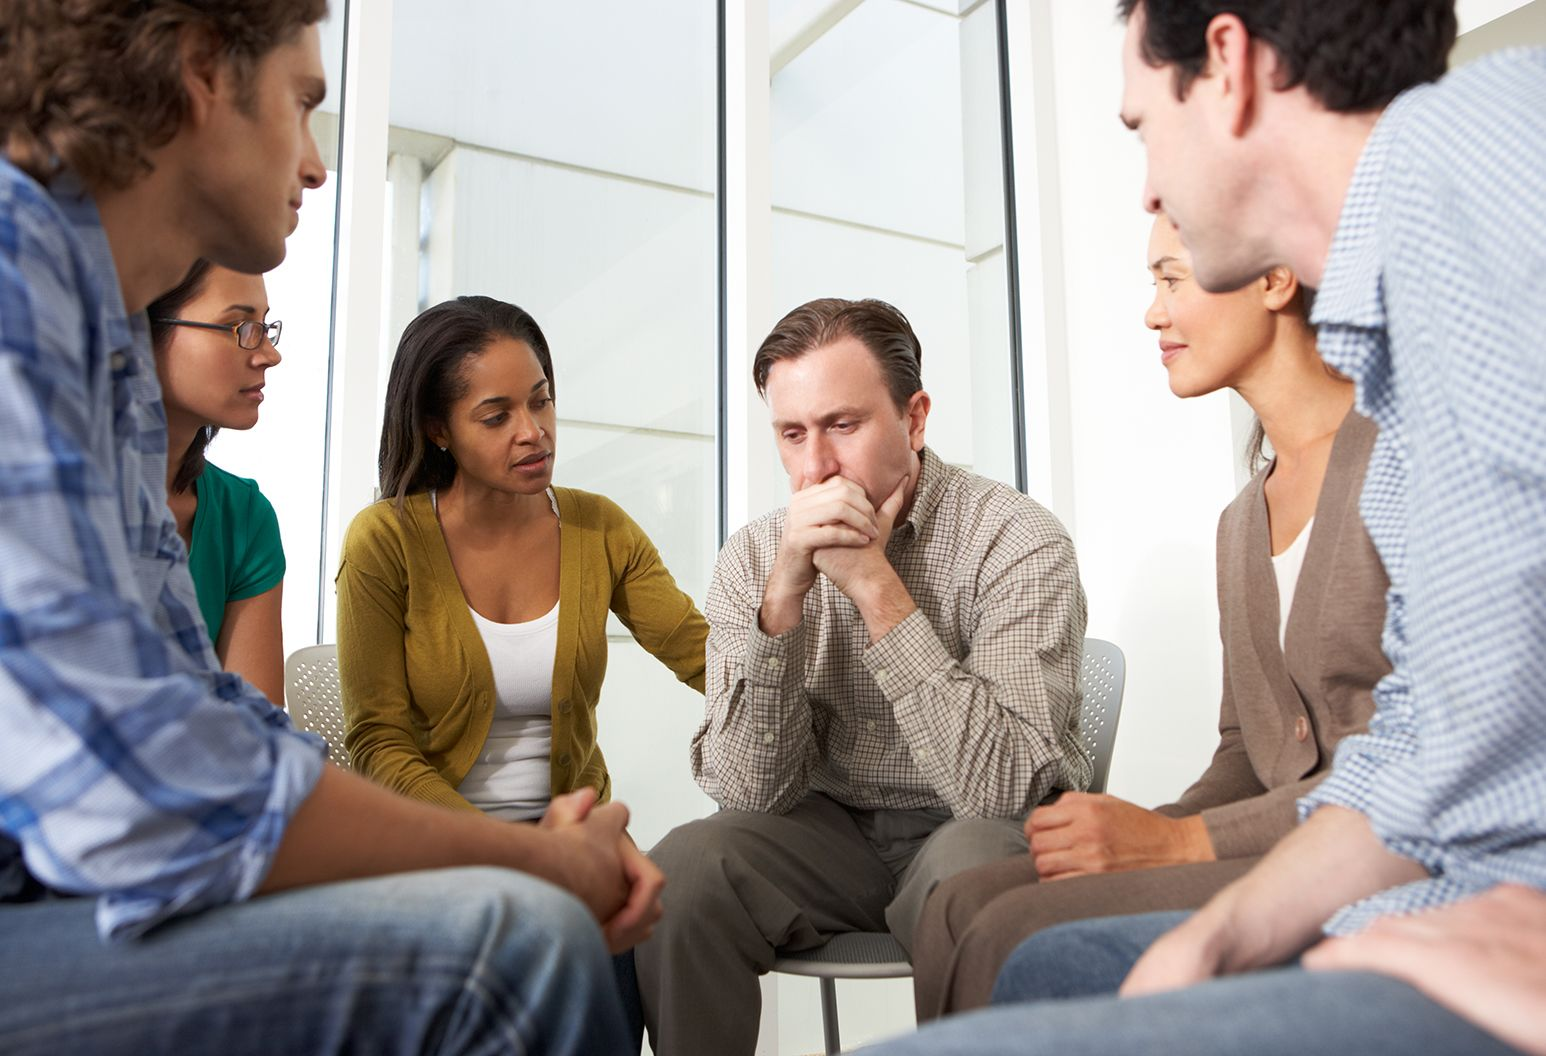 Meeting Of Support Group Having A Conversation